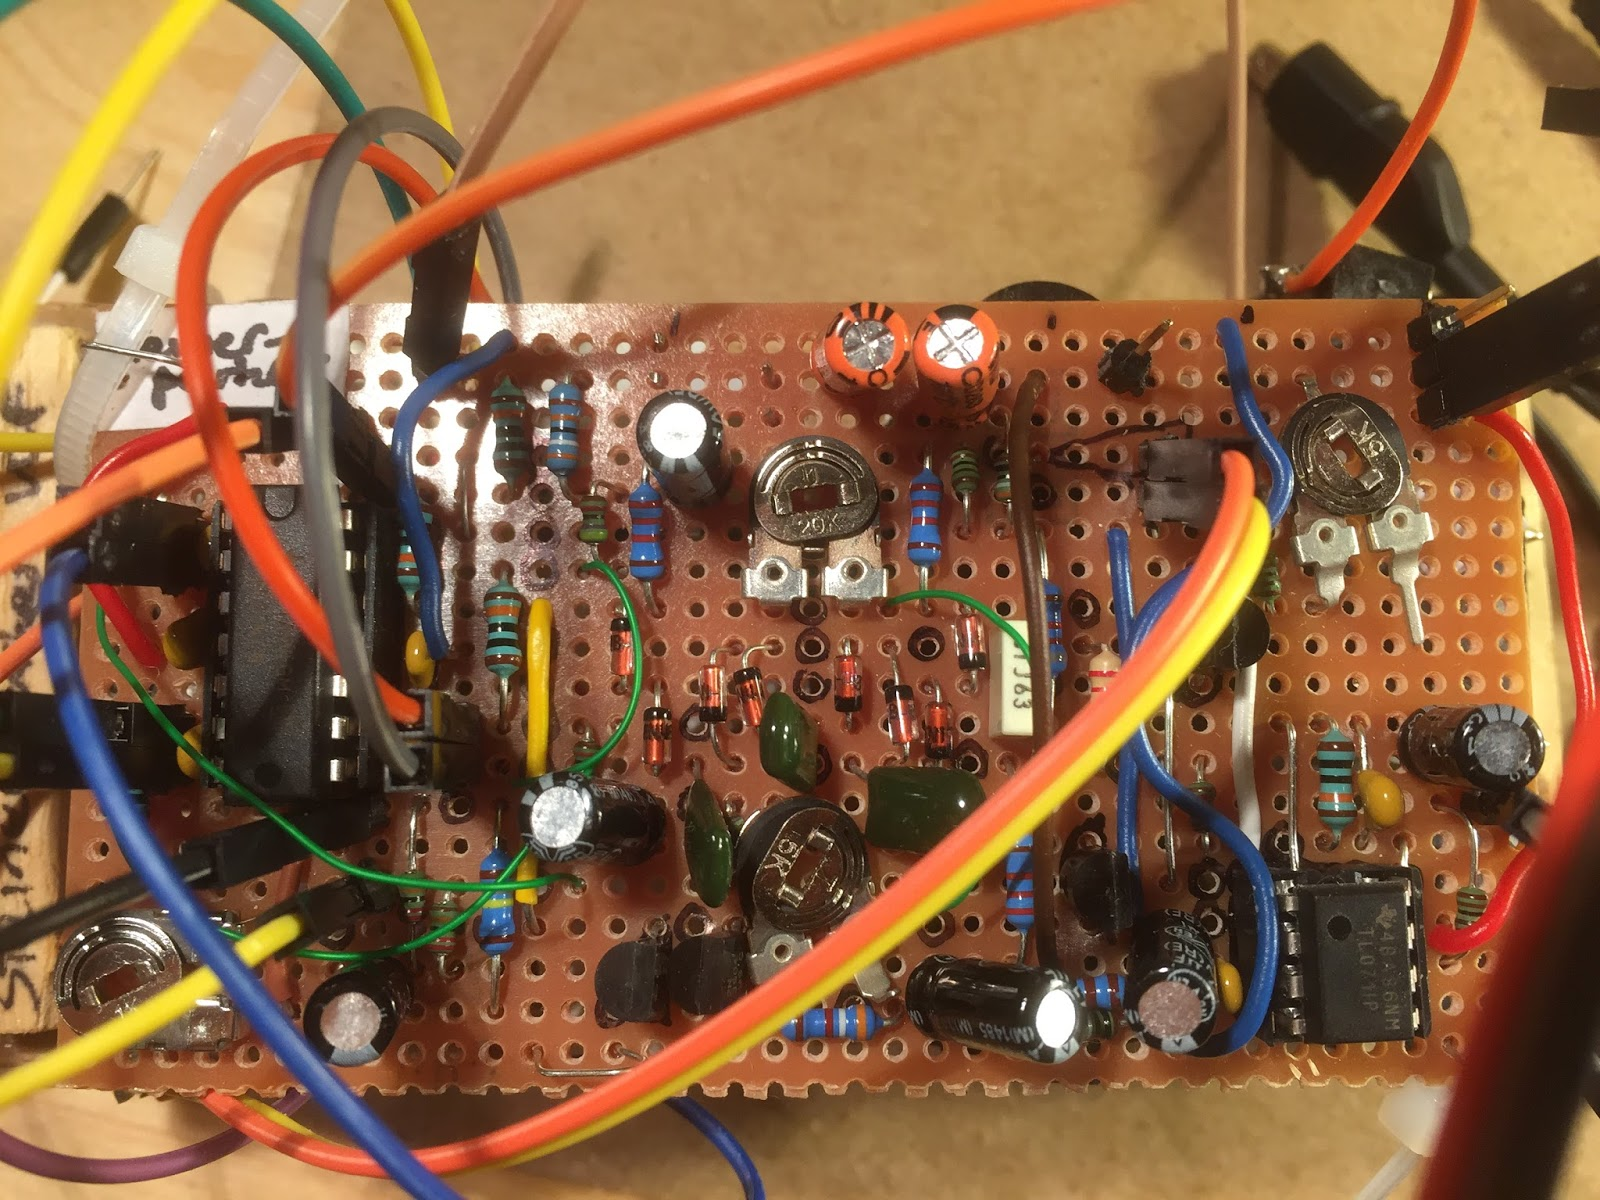 Fuzzy Music How To Build A Digital Potentiometer Circuit Using Mcp4131 This Is From The Cgs Schematic 100nf Bypass Cap For Tl071 Best Under Stripboard Darker Blue Resistors Could Be Replaced By Trimpots As